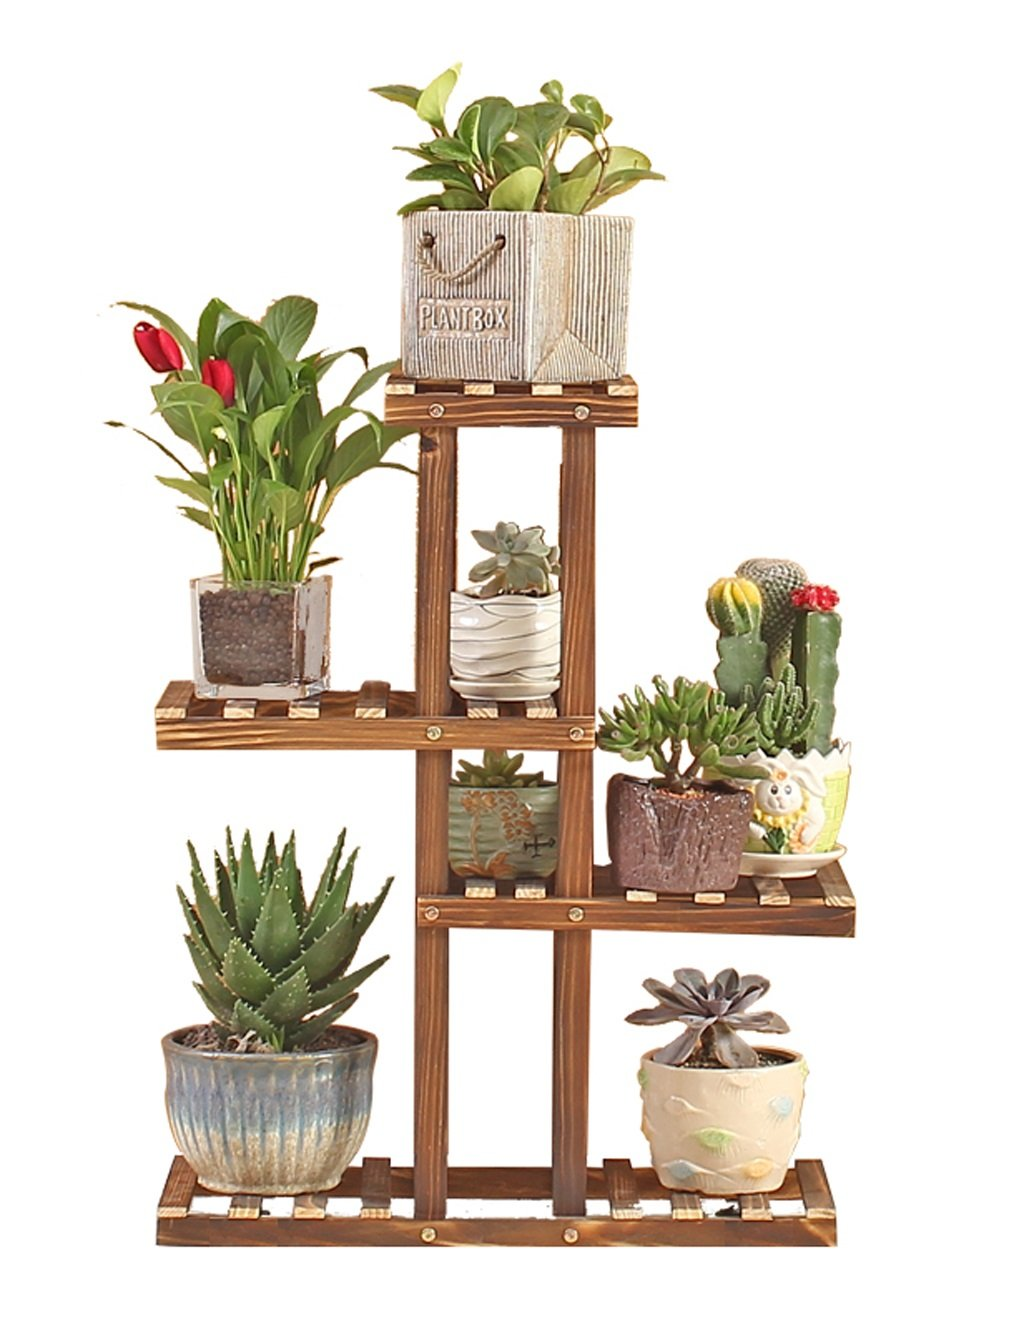 Echotang Wooden Flower Rack Movable Flowerpot Display Shelf Plant Stand, Brown (Color : No casters)